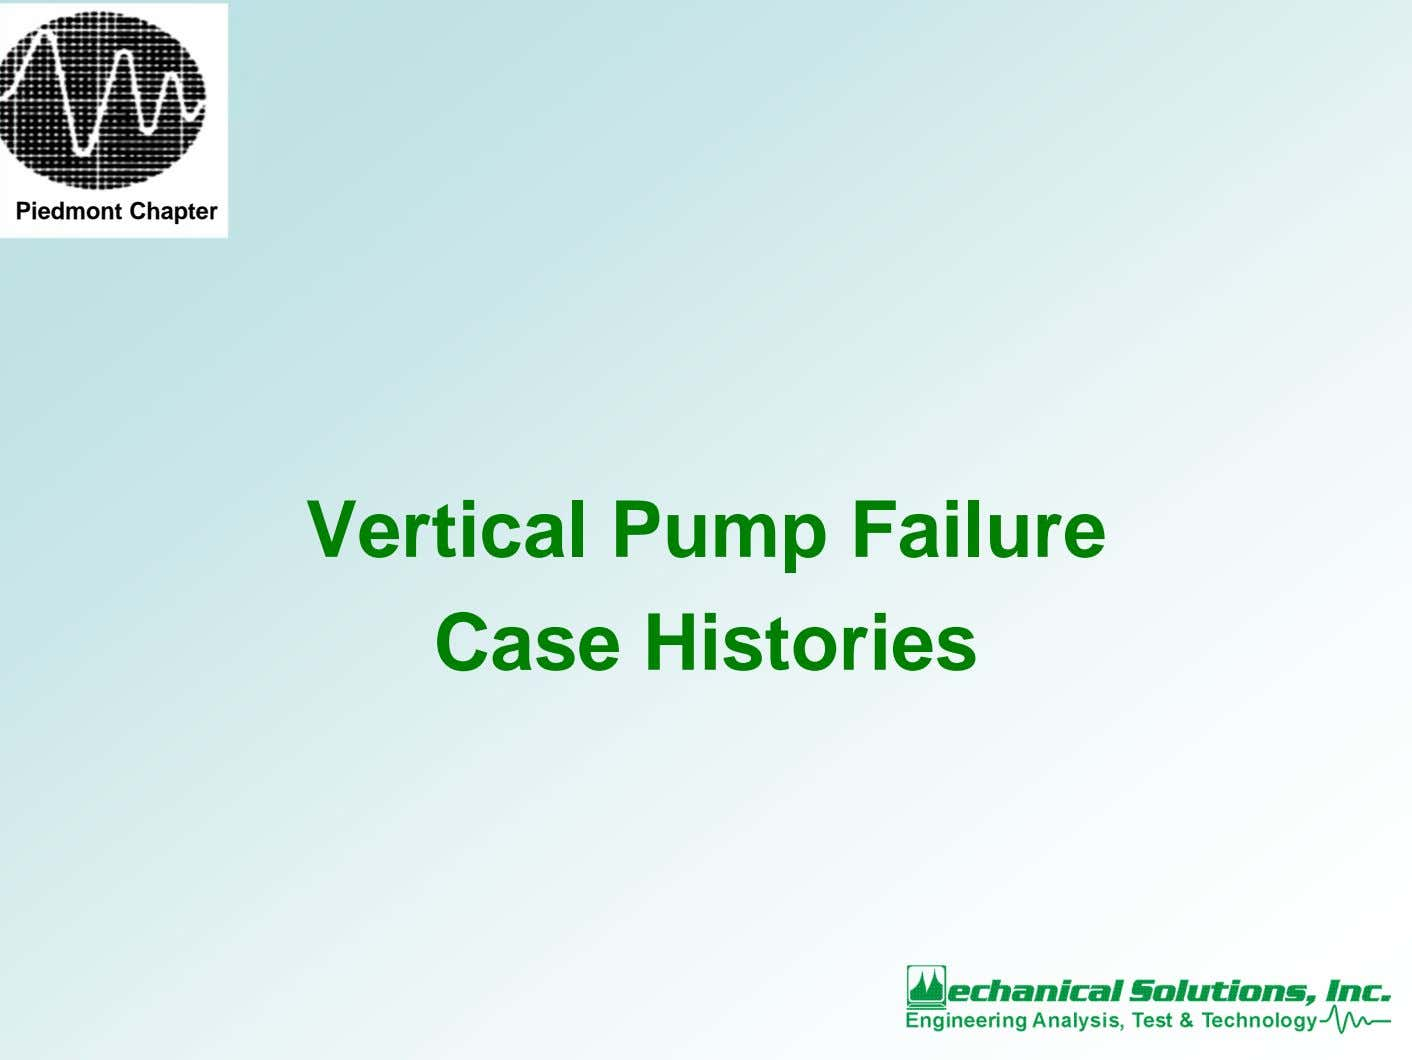 Piedmont Chapter Vertical Pump Failure Case Histories